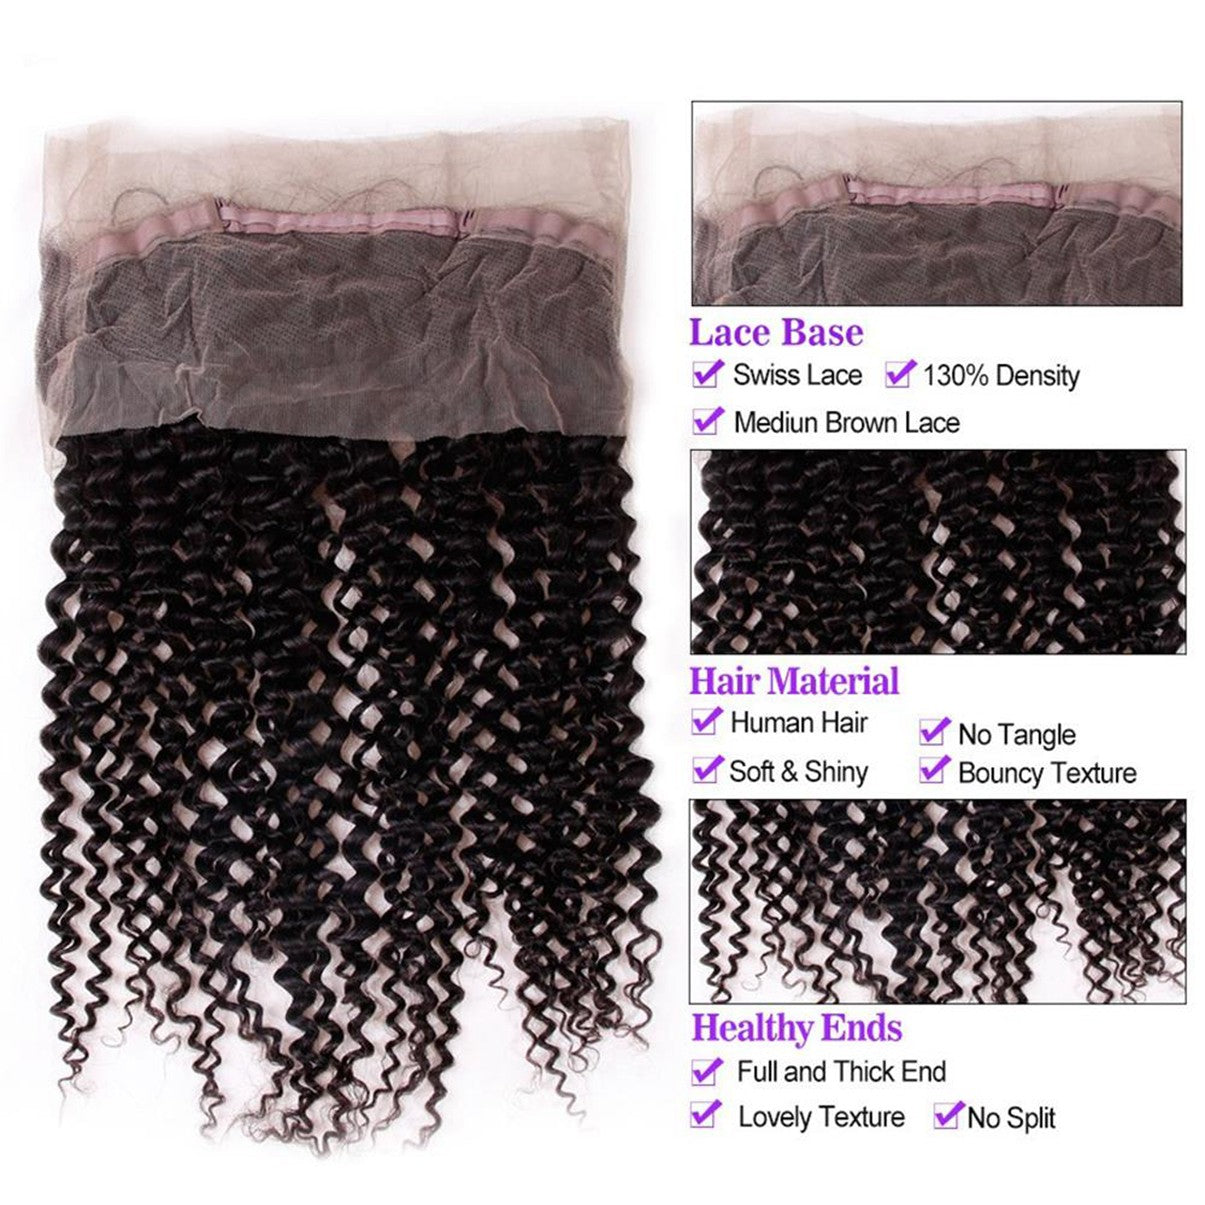 Lakihair 8A Grade Virgin Human Hair Kinky Curly Hair Extensions 2 Bundles With 360 Lace Frontal